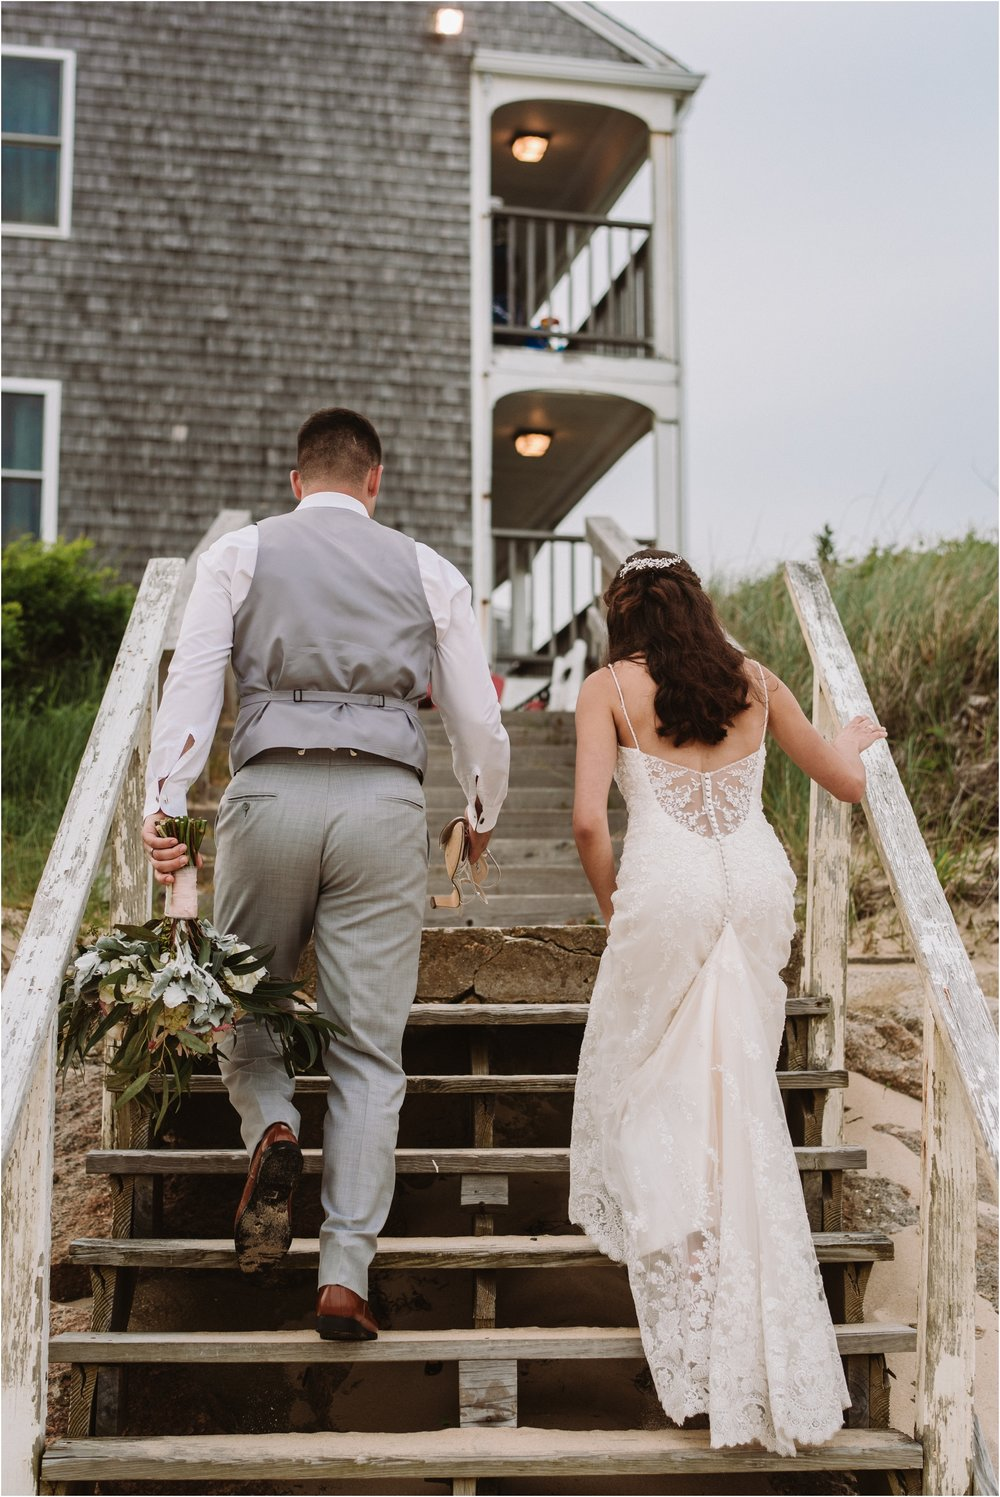 Sarah & Sam Pelham House Cape Cod Wedding Photographer-206.jpg